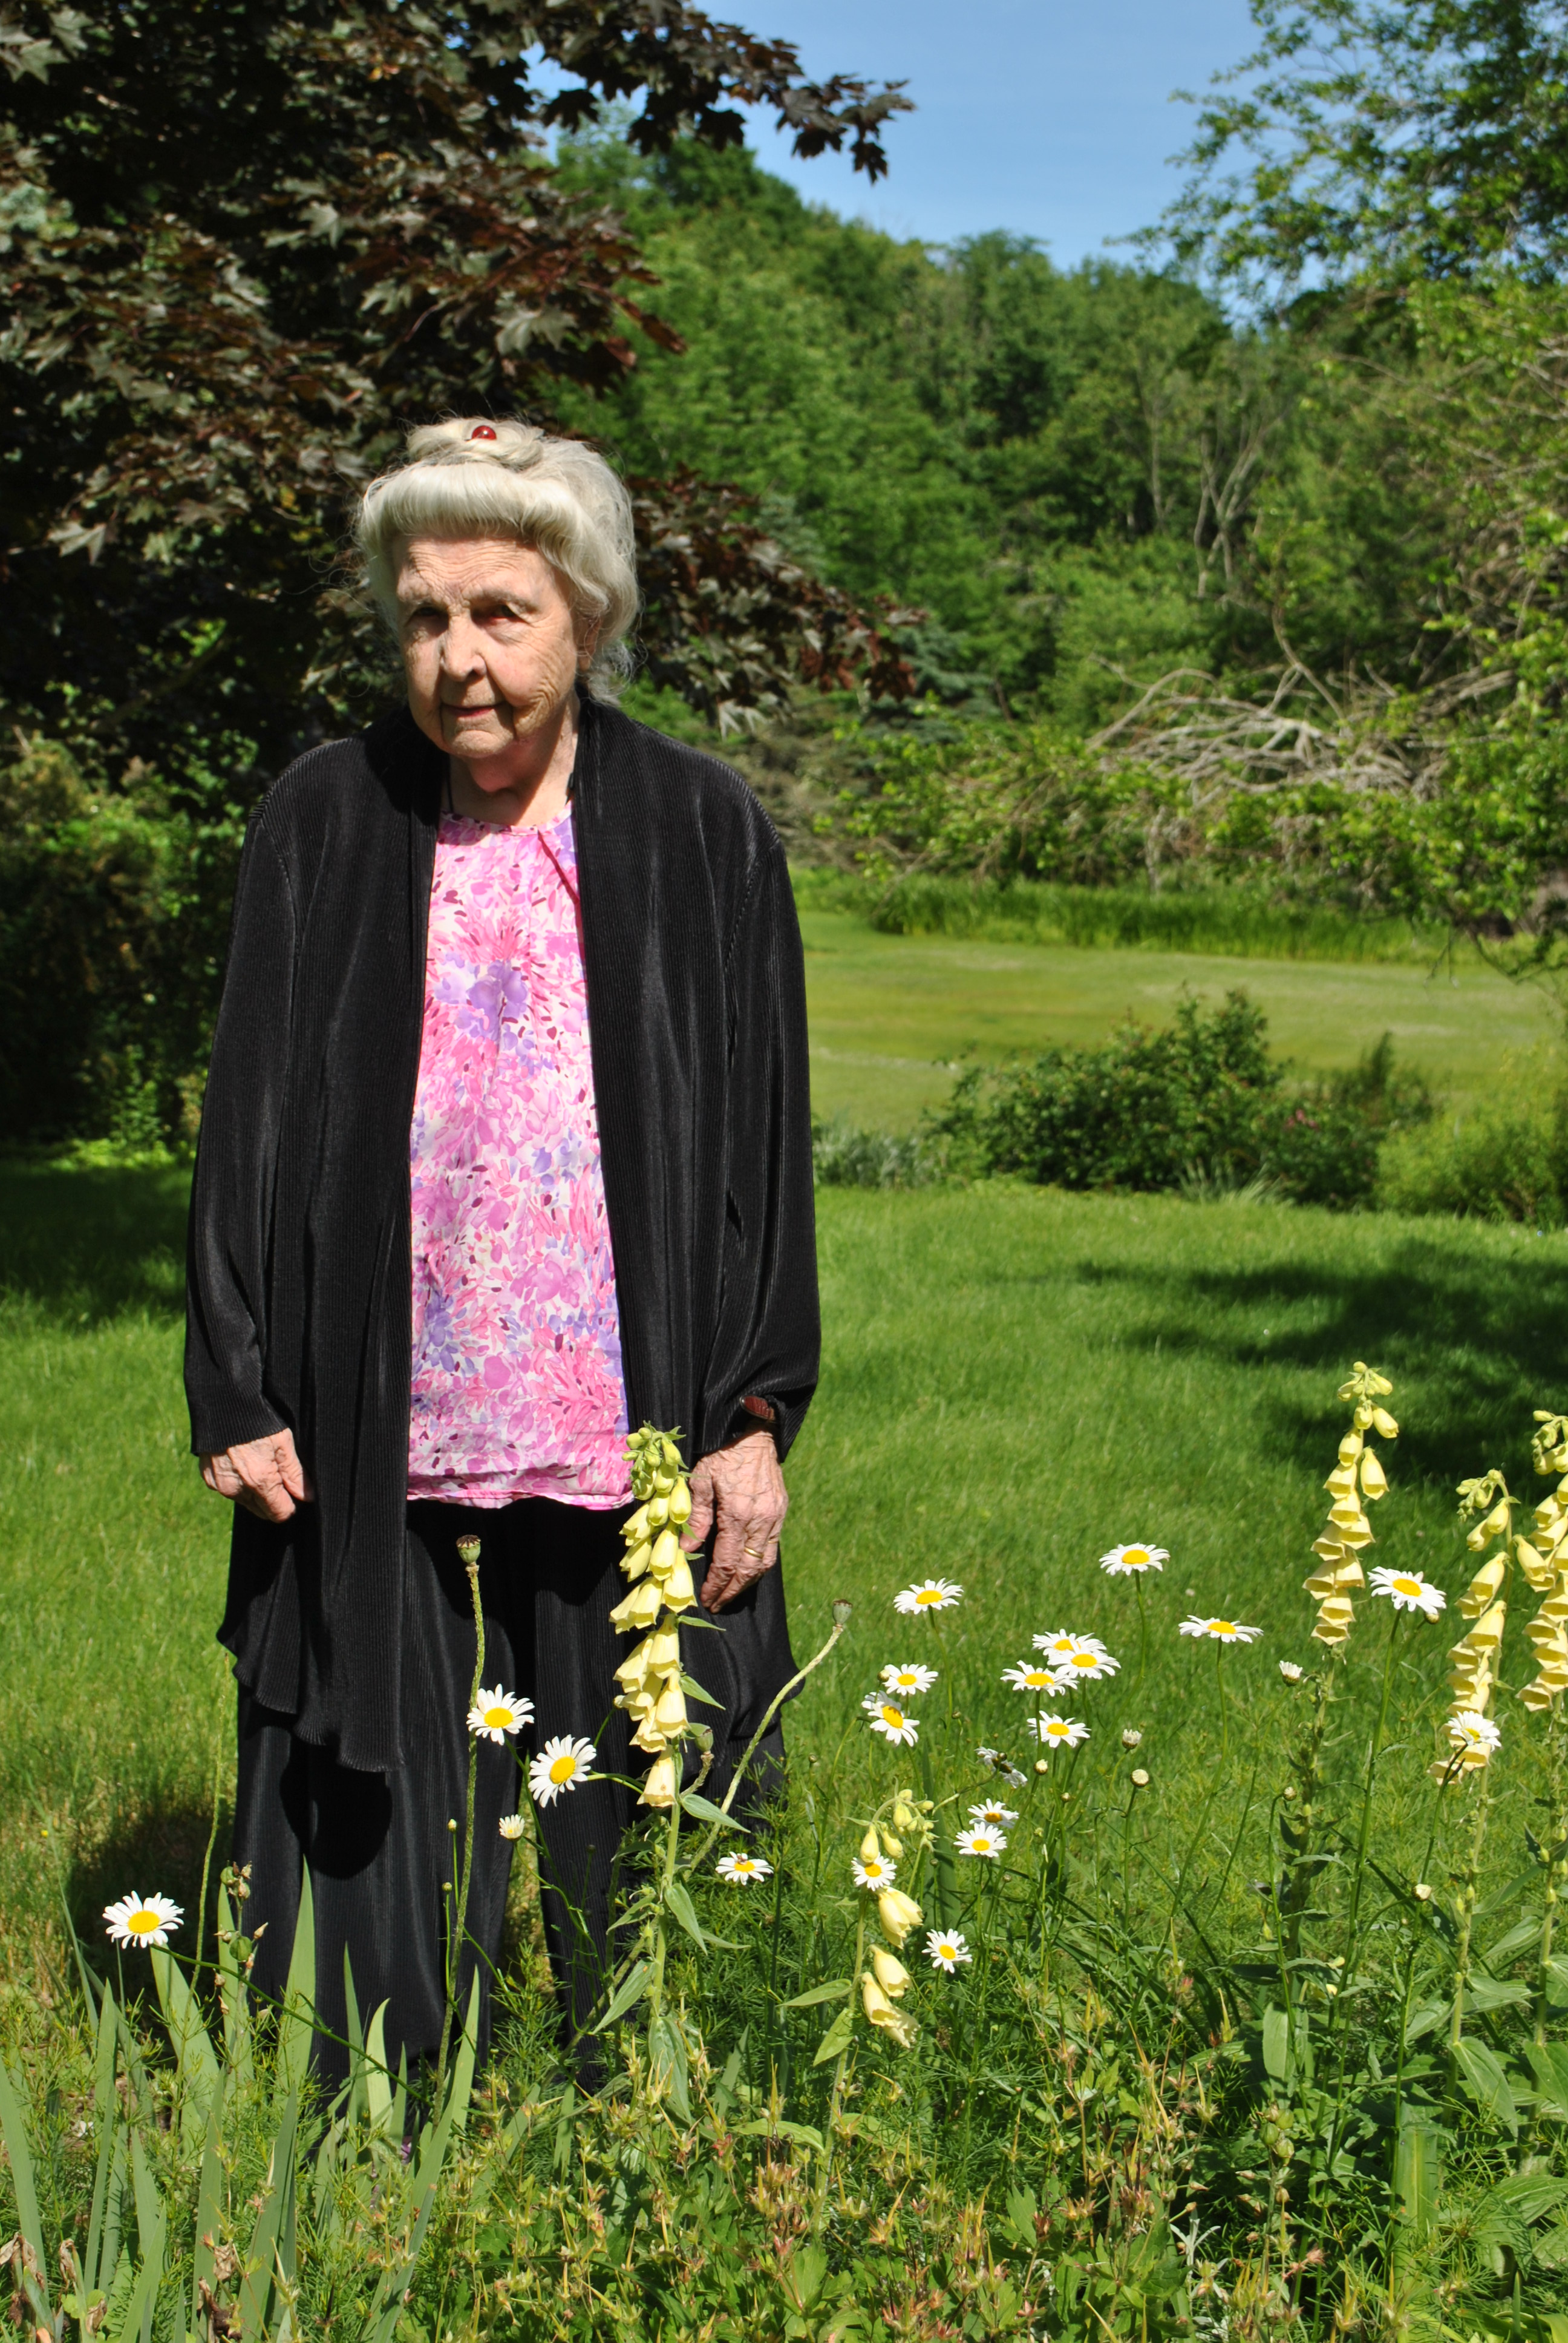 Liljan Minck Stands Surrounded By Yellow Fox Glove And Daisies, At The Edge  Of One Of The Gardens She Has Tended For Over Half A Century.